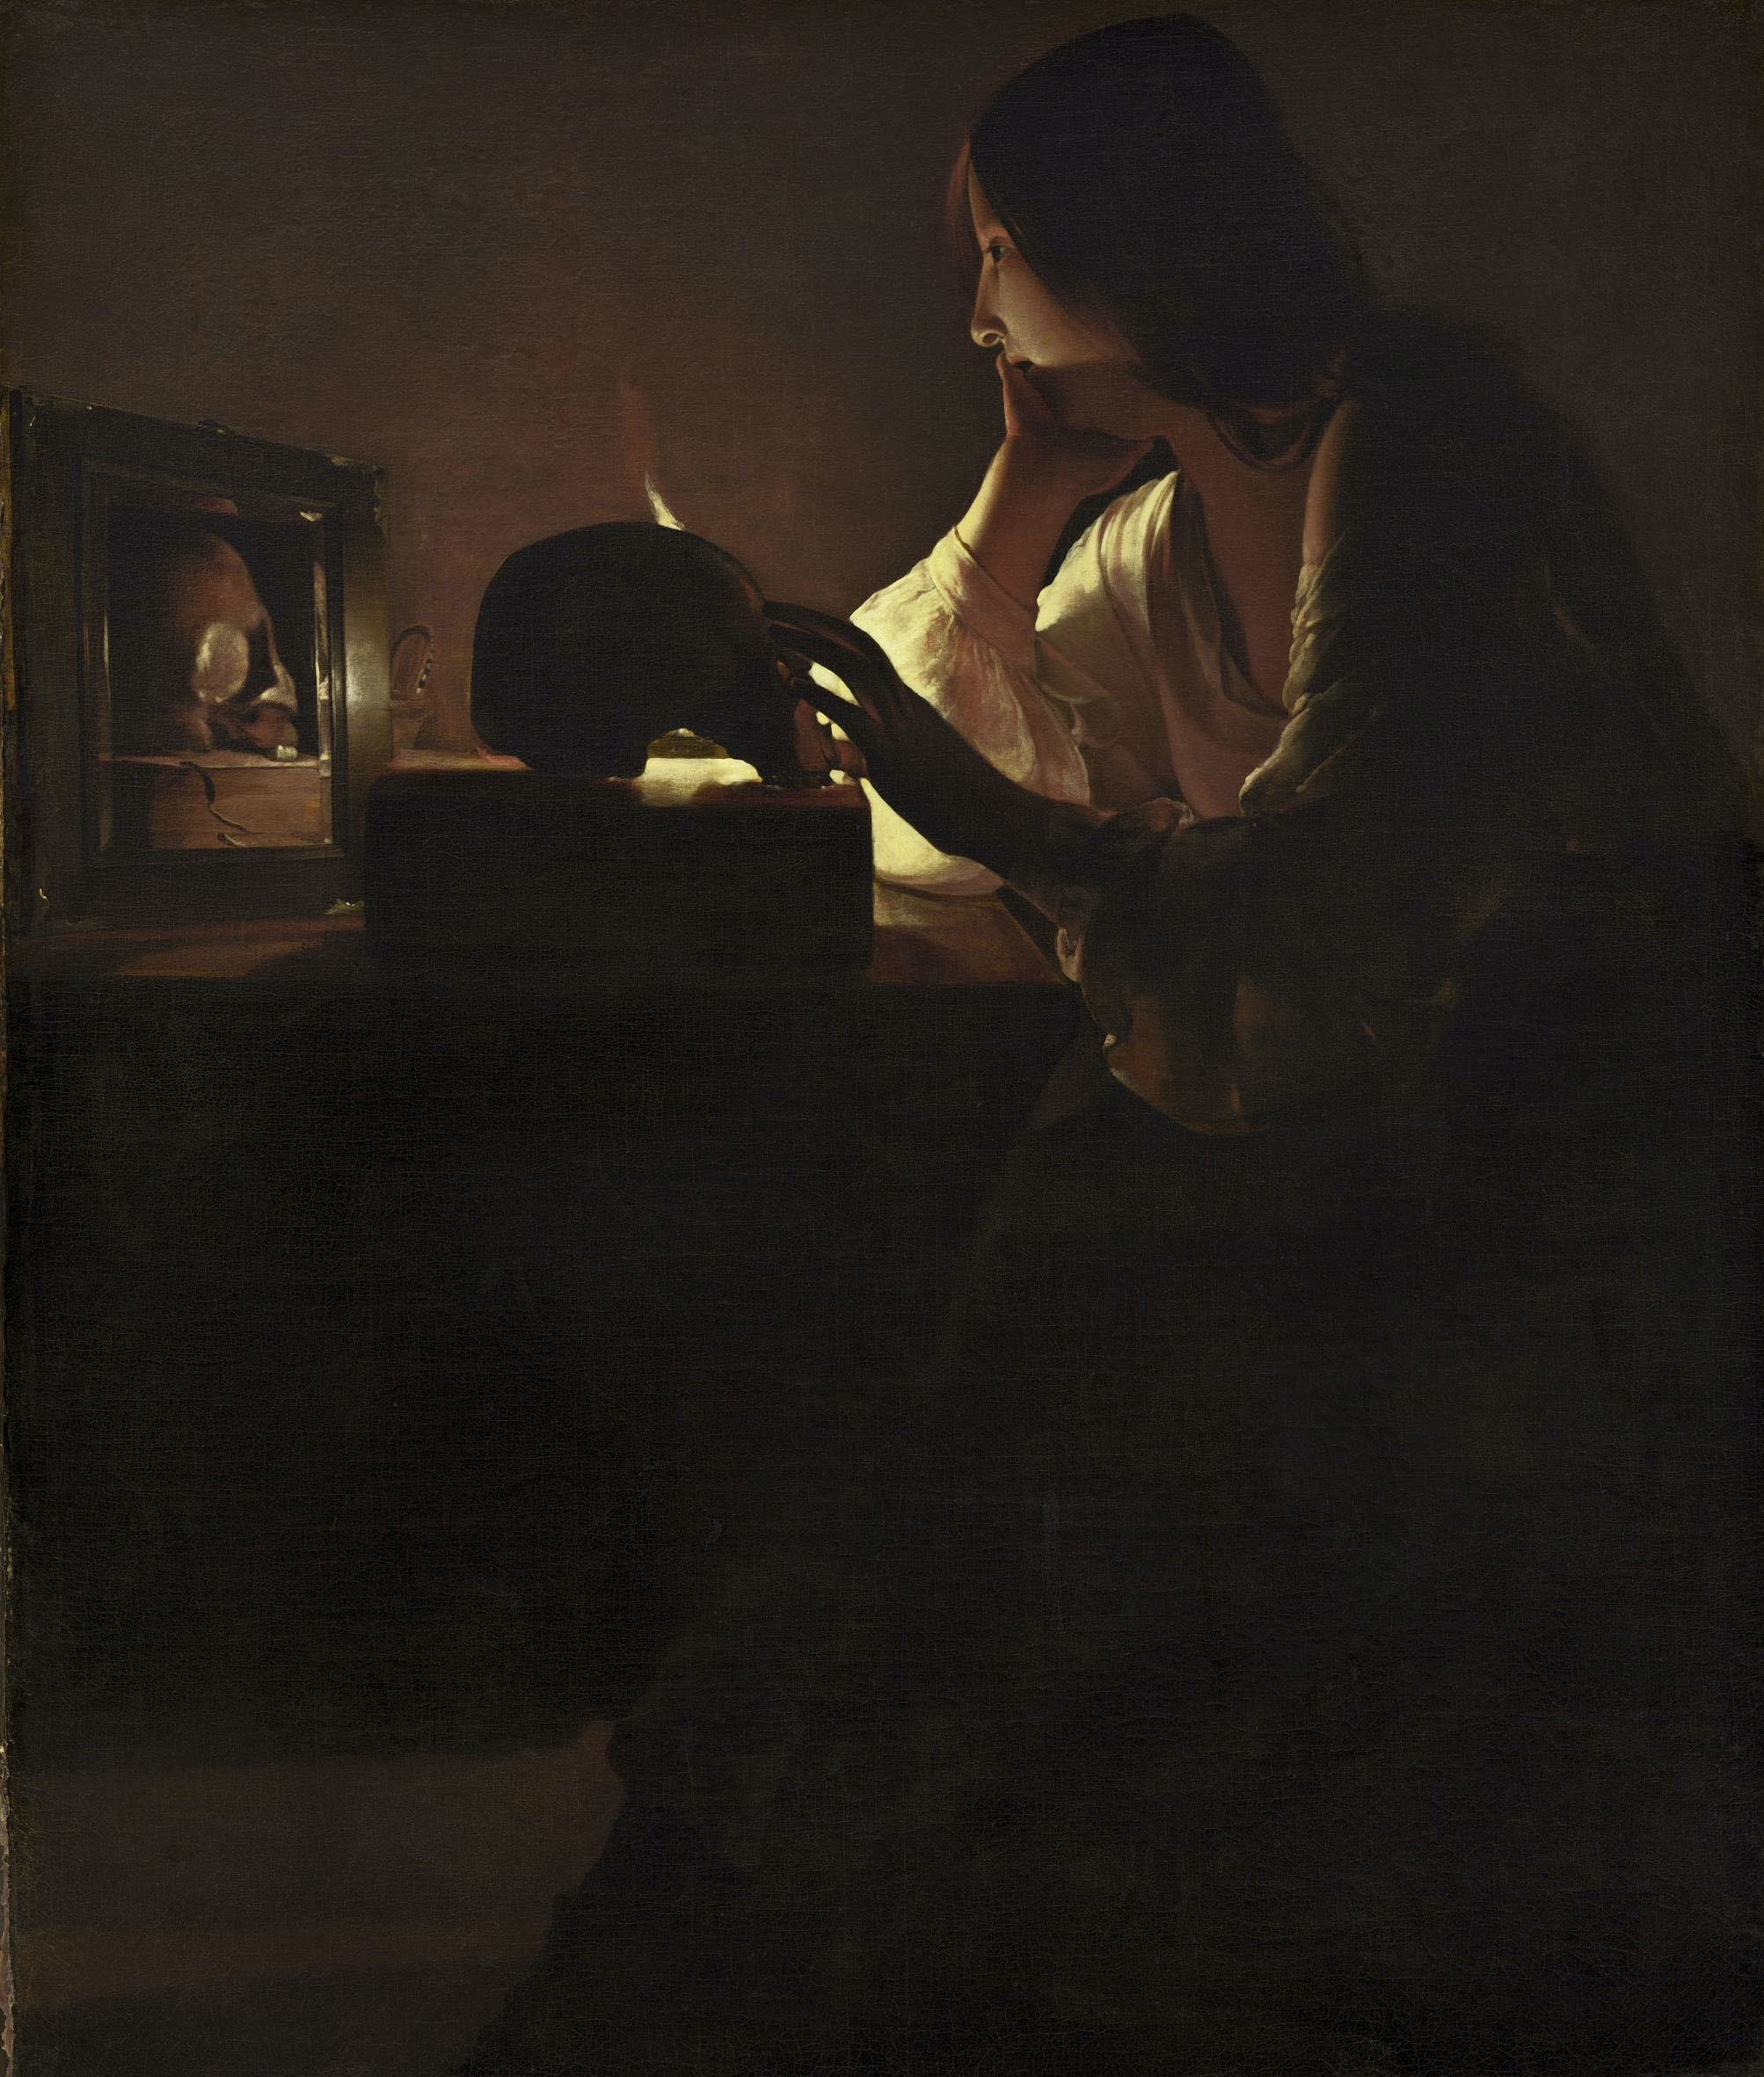 Georges de La Tour, <em>The Repentant Magdalen</em>, c.1635–1640. Oil on canvas, 44 1/2 x 36 1/2 inches. National Gallery of Art, Washington, D.C.